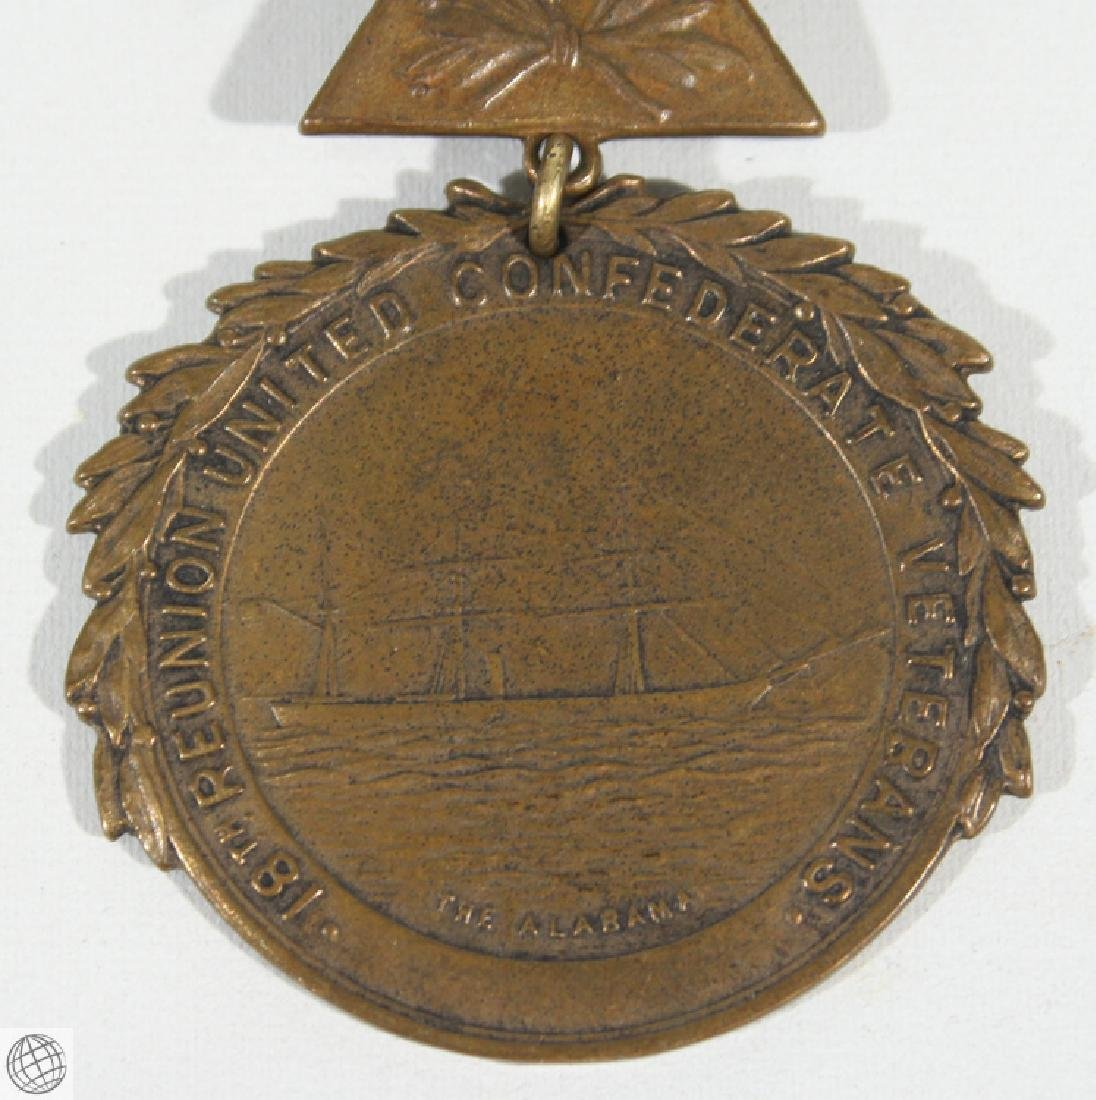 Antique Confederate REUNION MEDAL BADGE 1908 Birmingham - 3